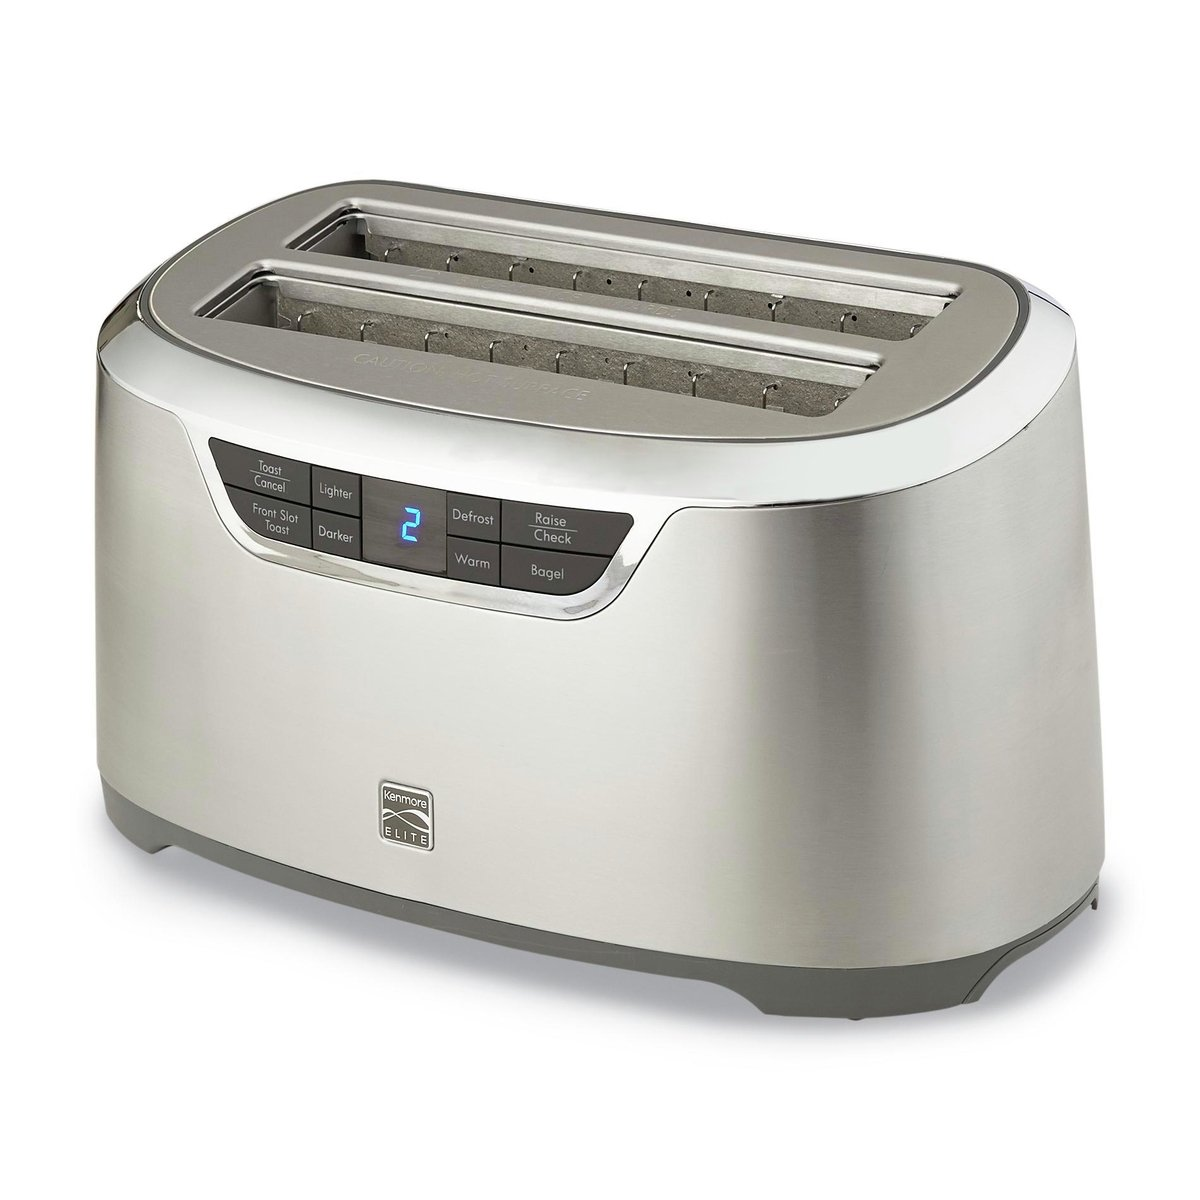 Kenmore Elite 76774 4-Slice Auto-Lift Long Slot Toaster in Stainless Steel by Kenmore